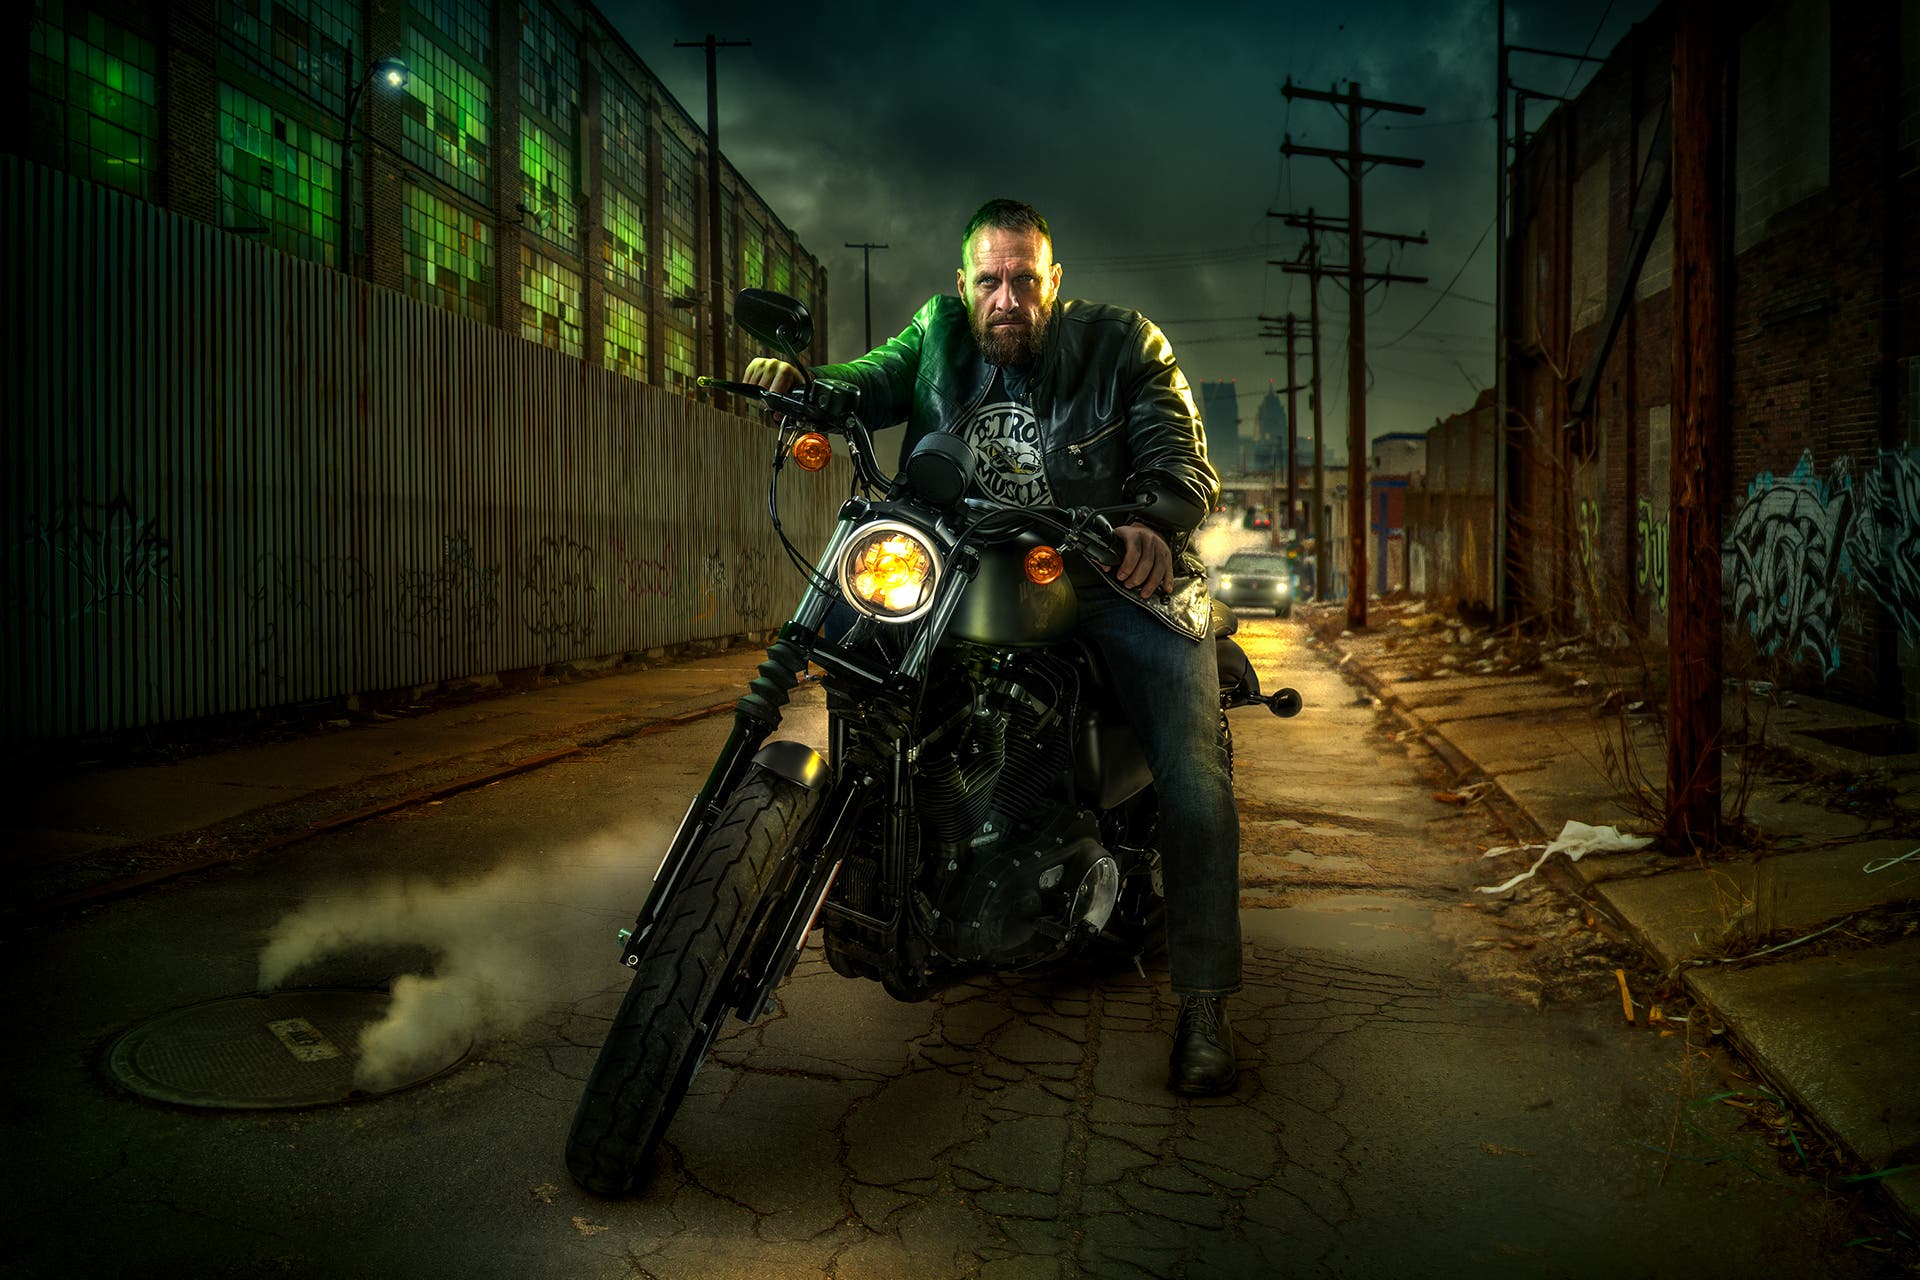 Chris Clor Gives a Cinematic Look to His Harley Davidson Concept Work